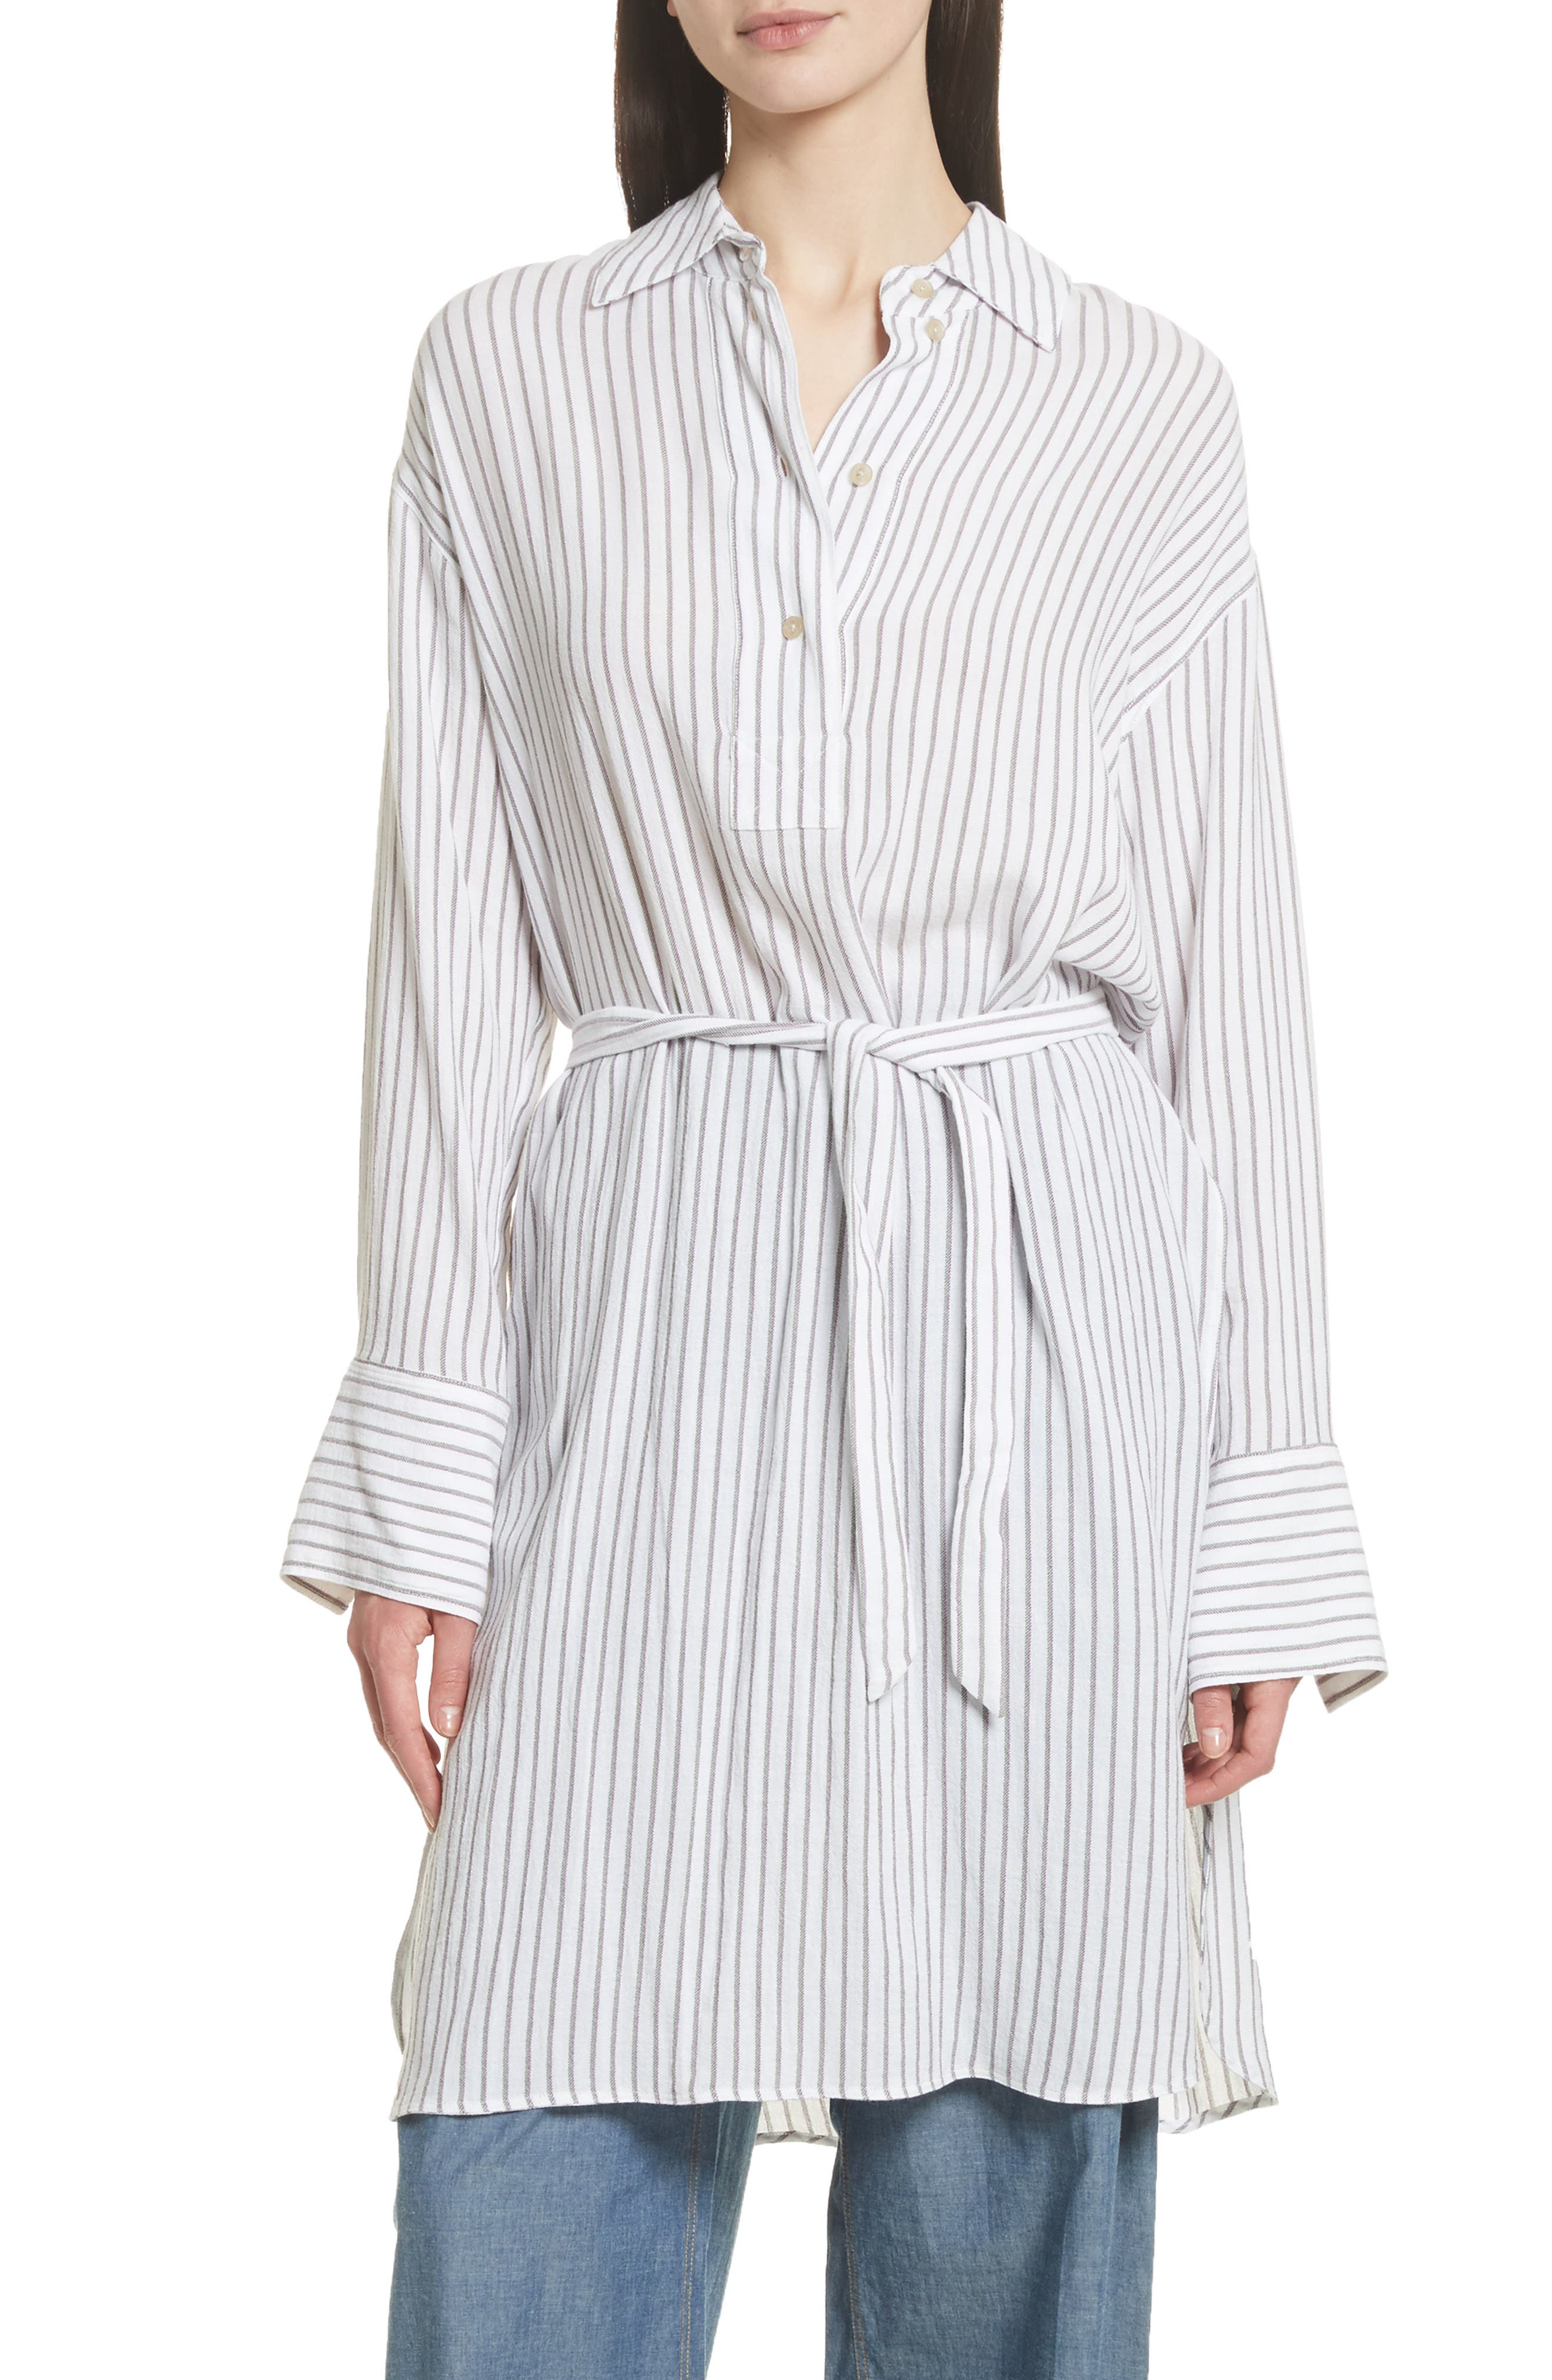 Elizabeth and James Tawerence Stripe Belted Tunic